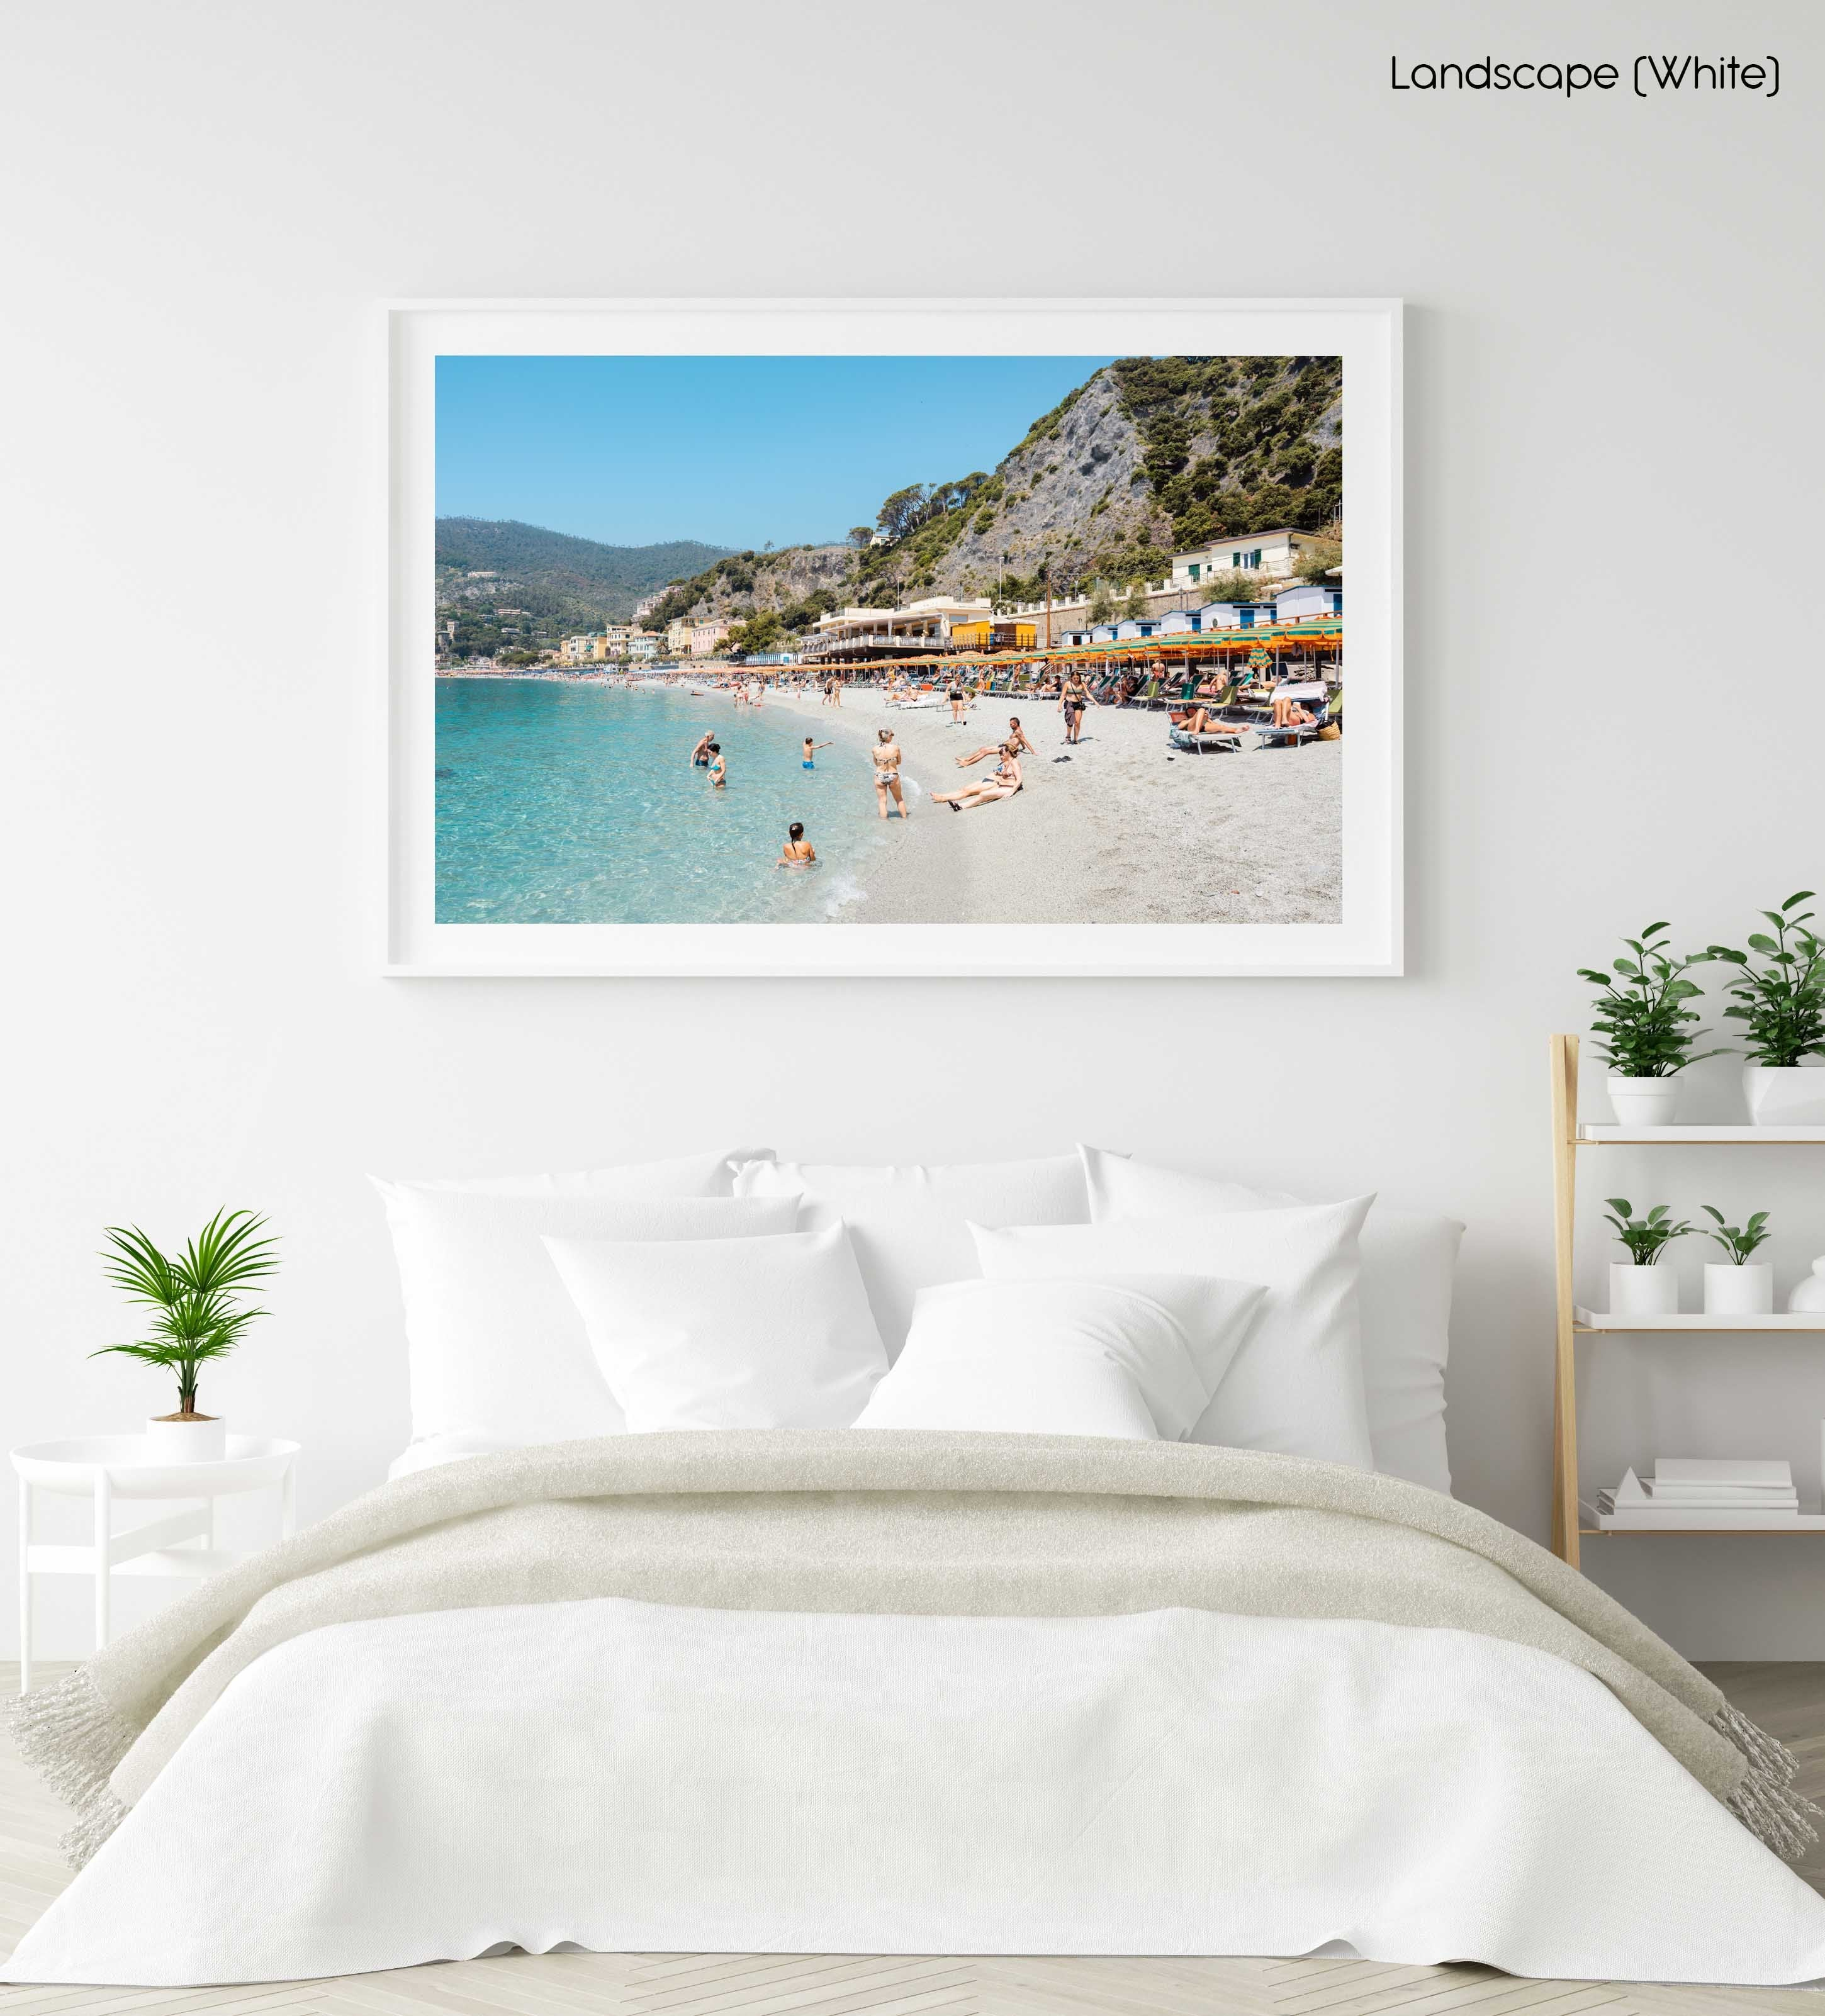 People swimming and sitting at colorful Monterosso beach in Cinque Terre in a white fine art frame